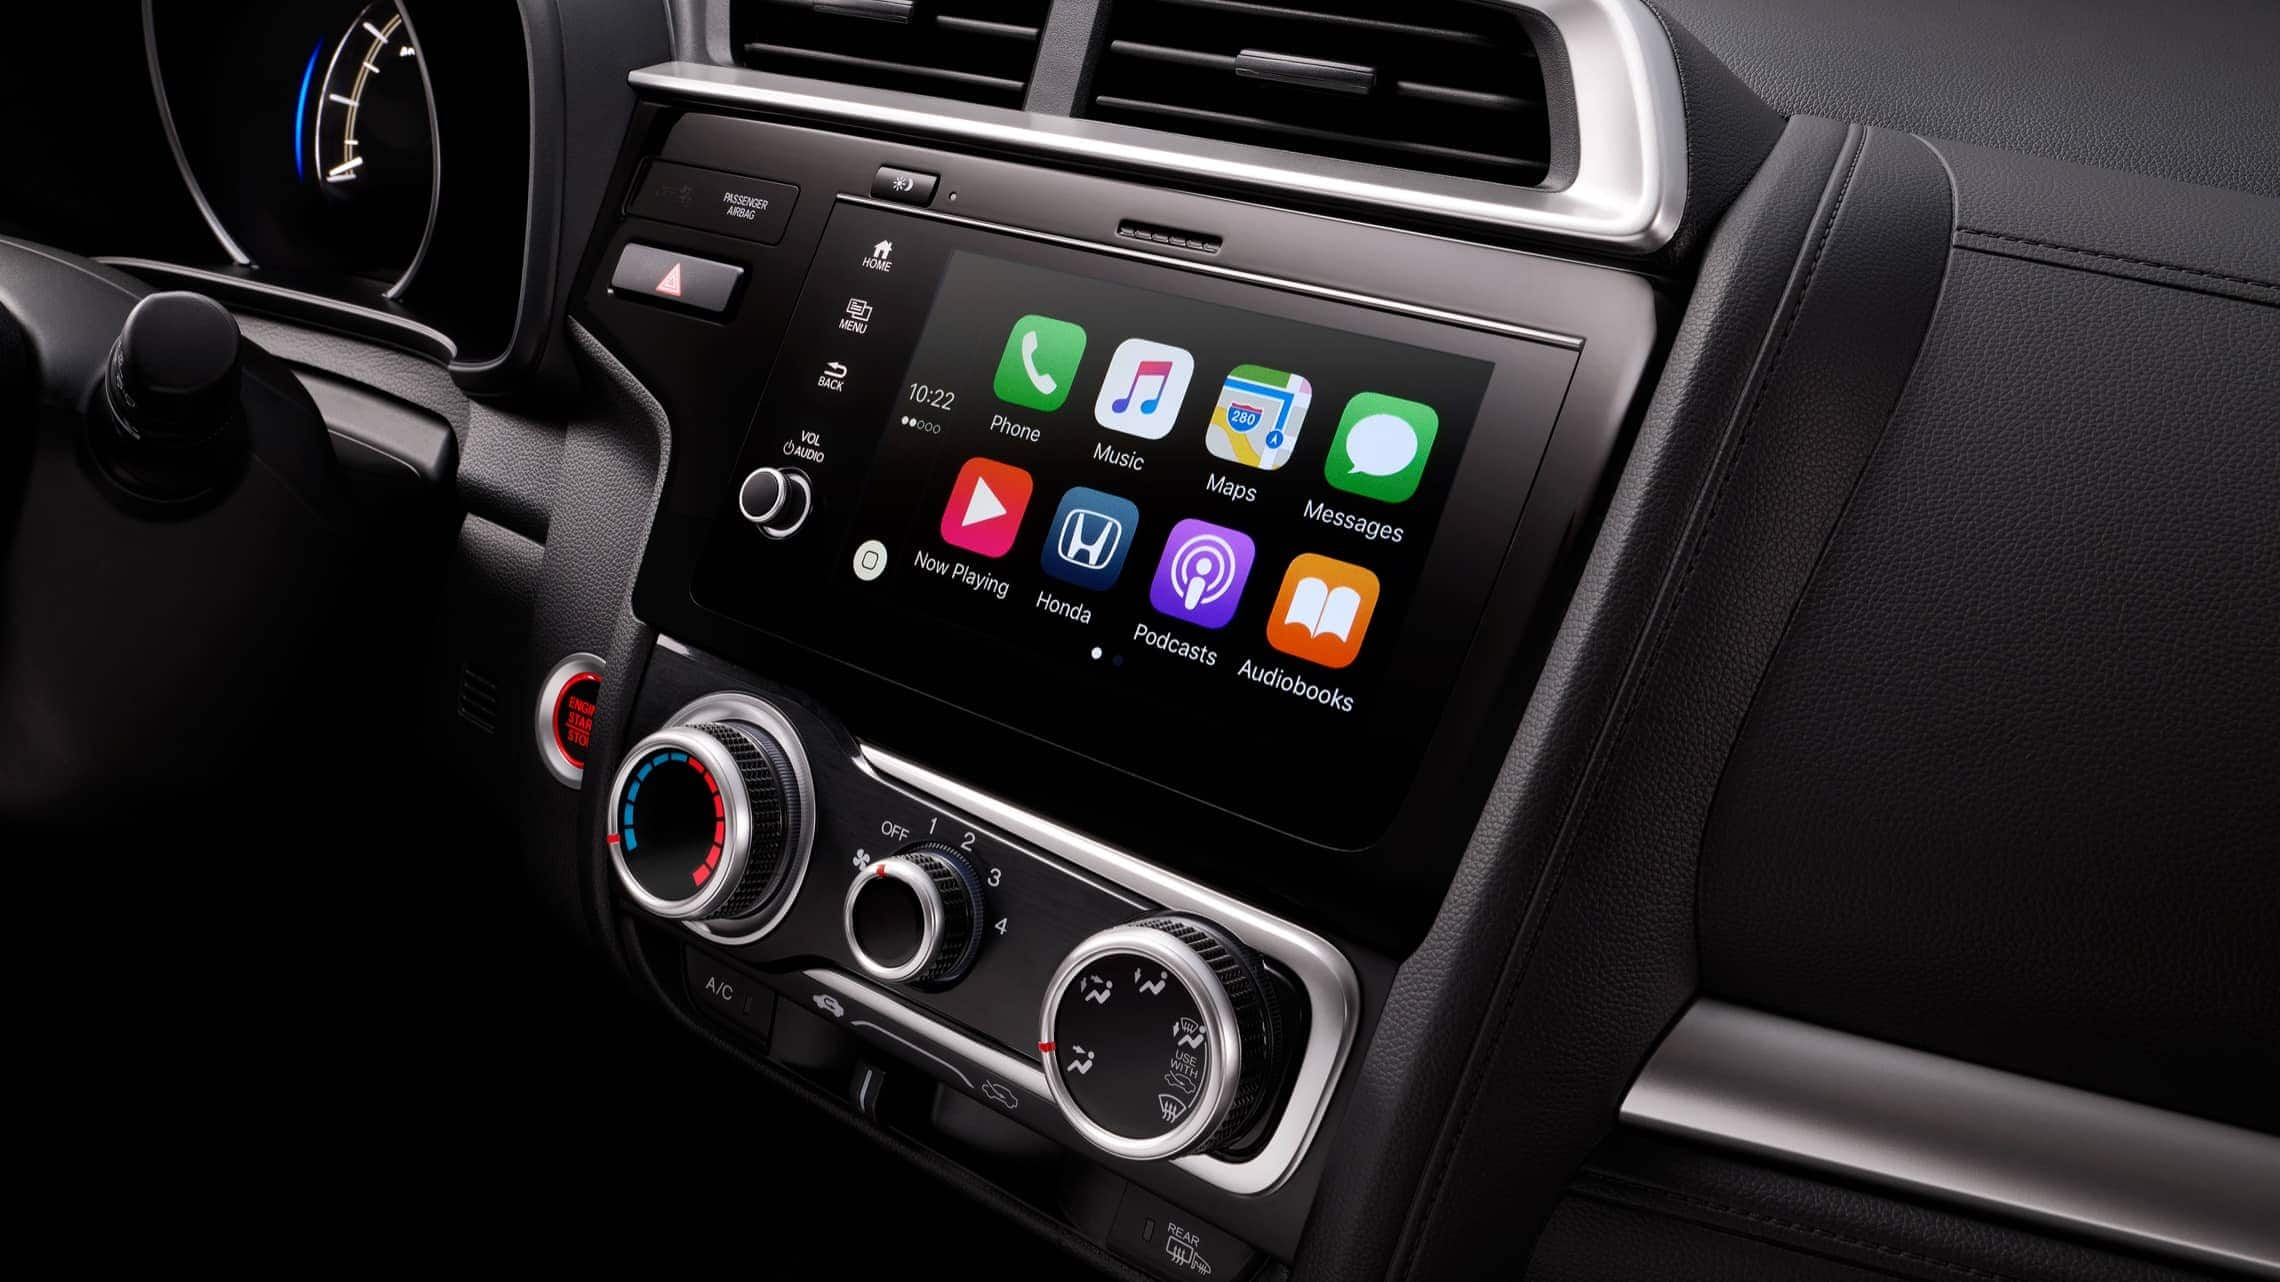 Display Audio touch-screen with Apple CarPlay™ detail on 2019 Honda Fit.